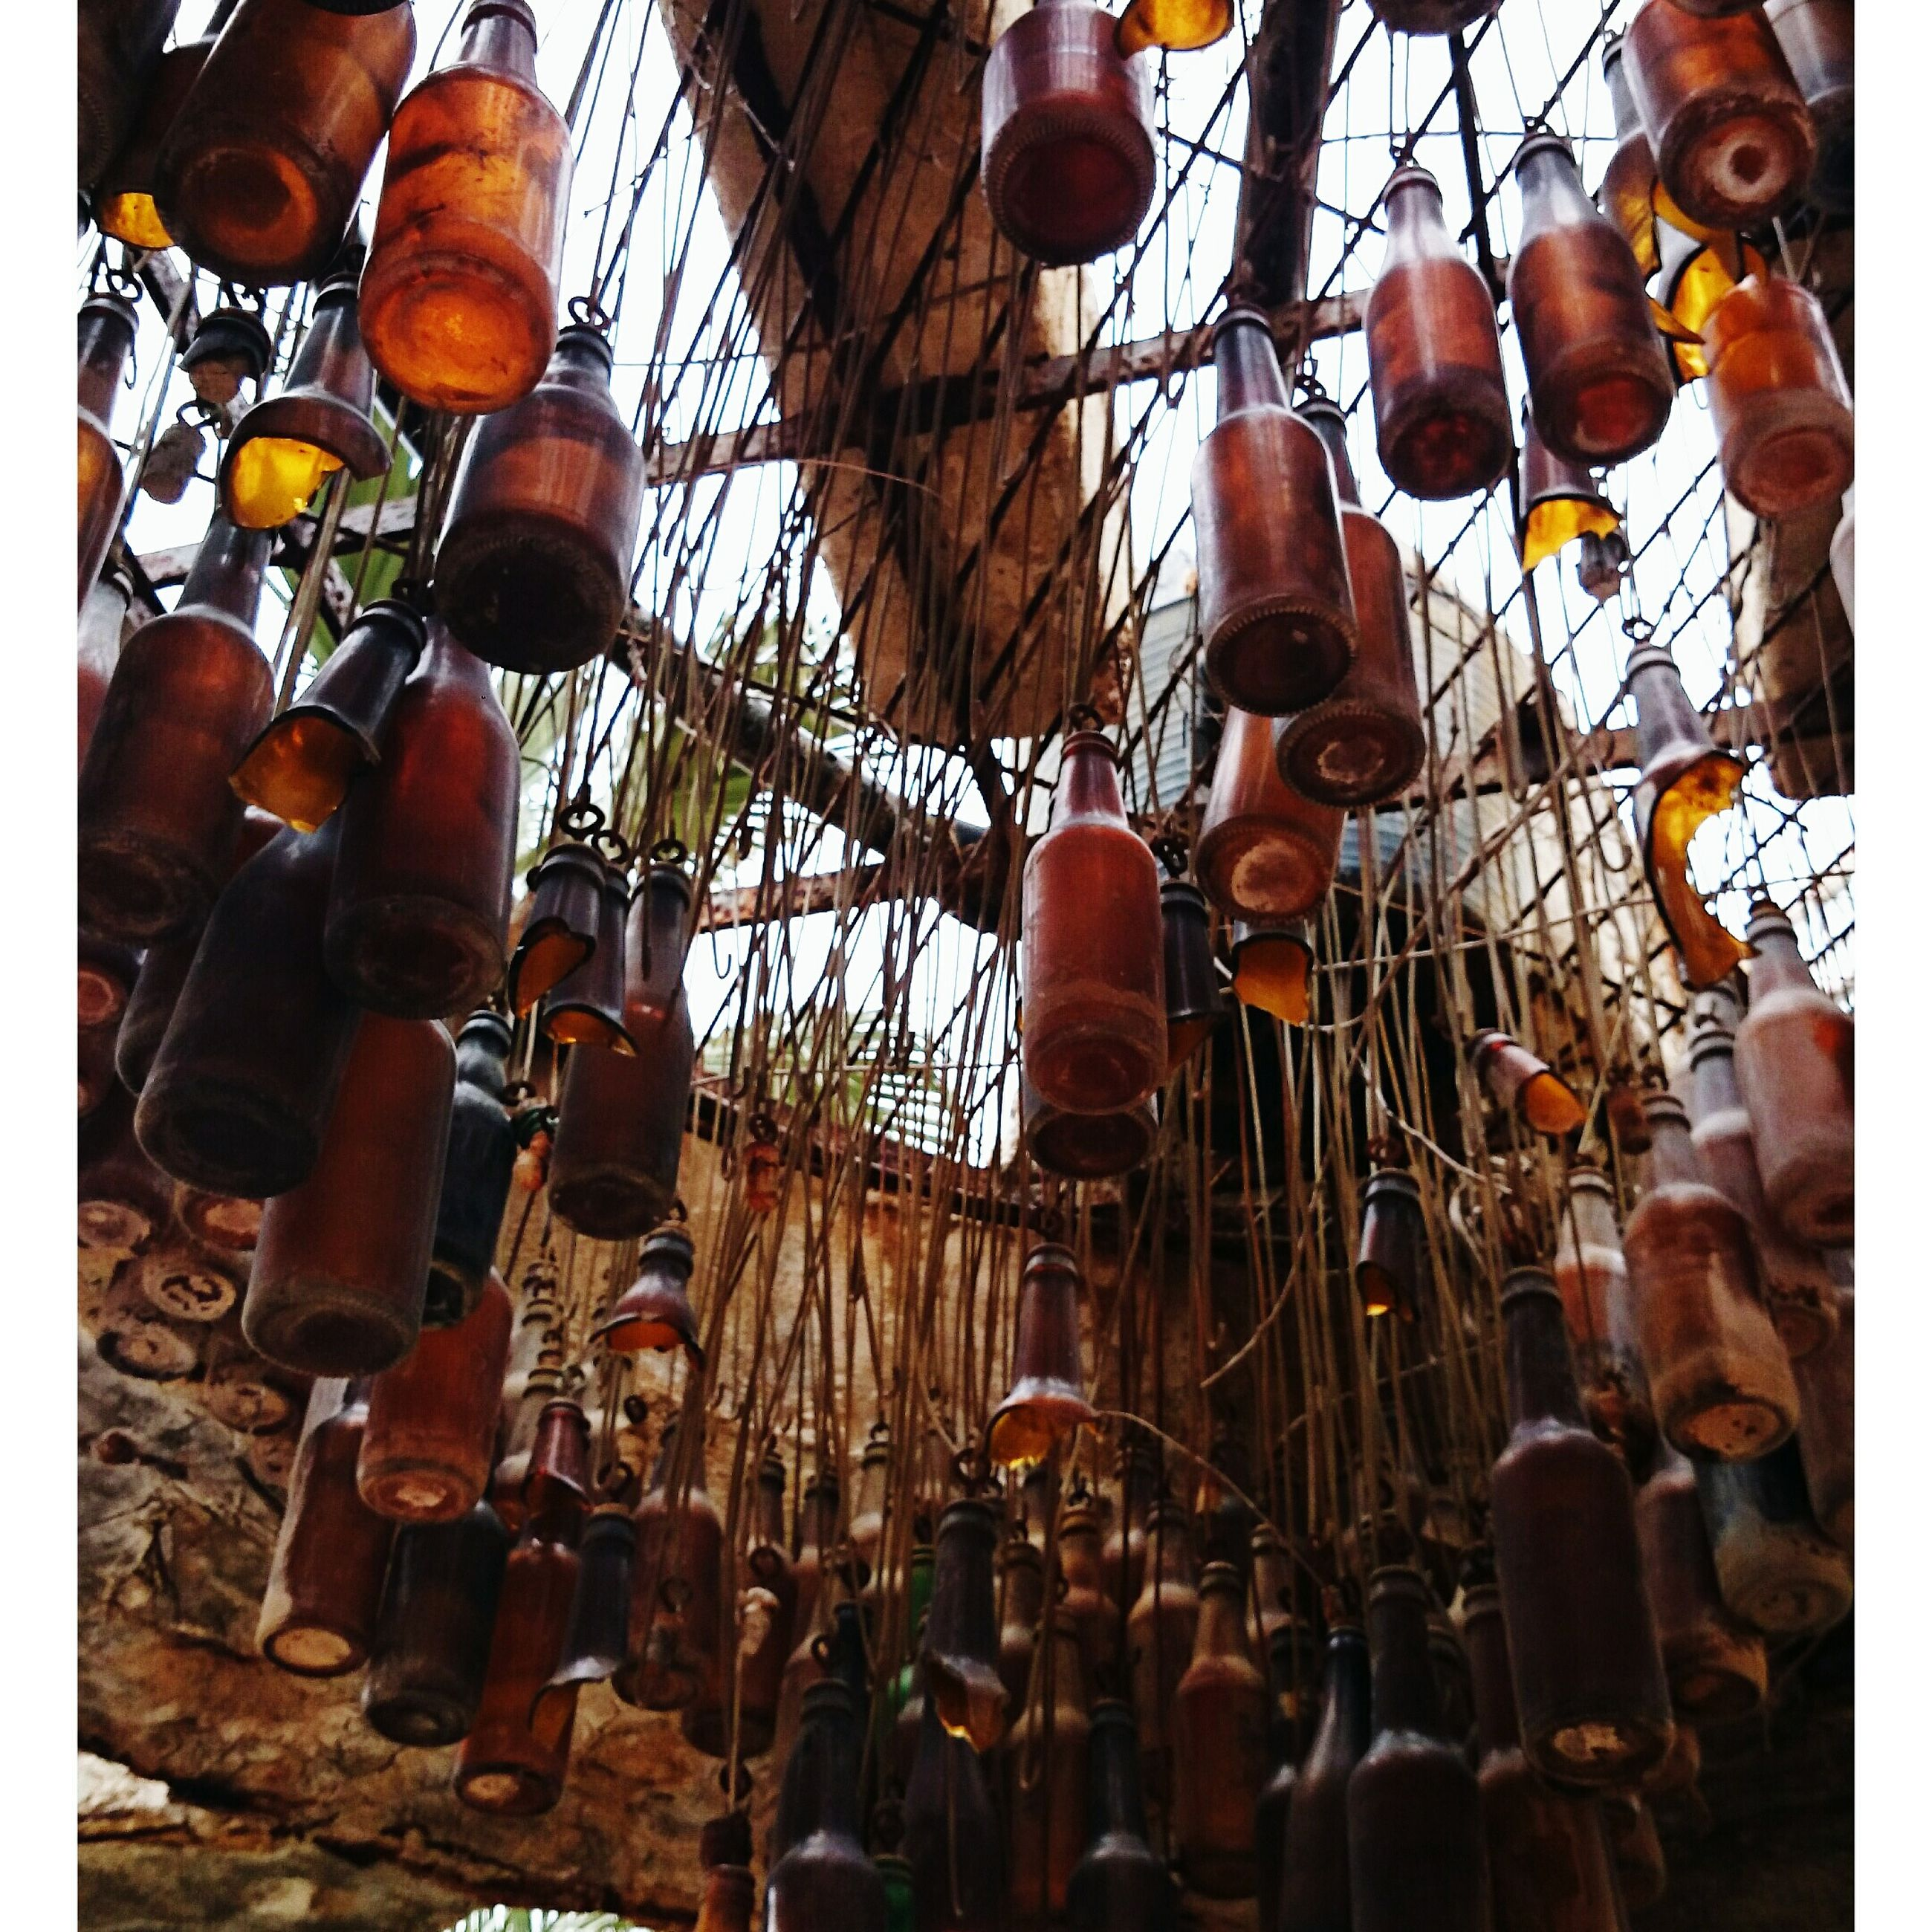 metal, abundance, hanging, large group of objects, low angle view, metallic, in a row, padlock, day, close-up, outdoors, industry, variation, rusty, cultures, equipment, no people, wood - material, protection